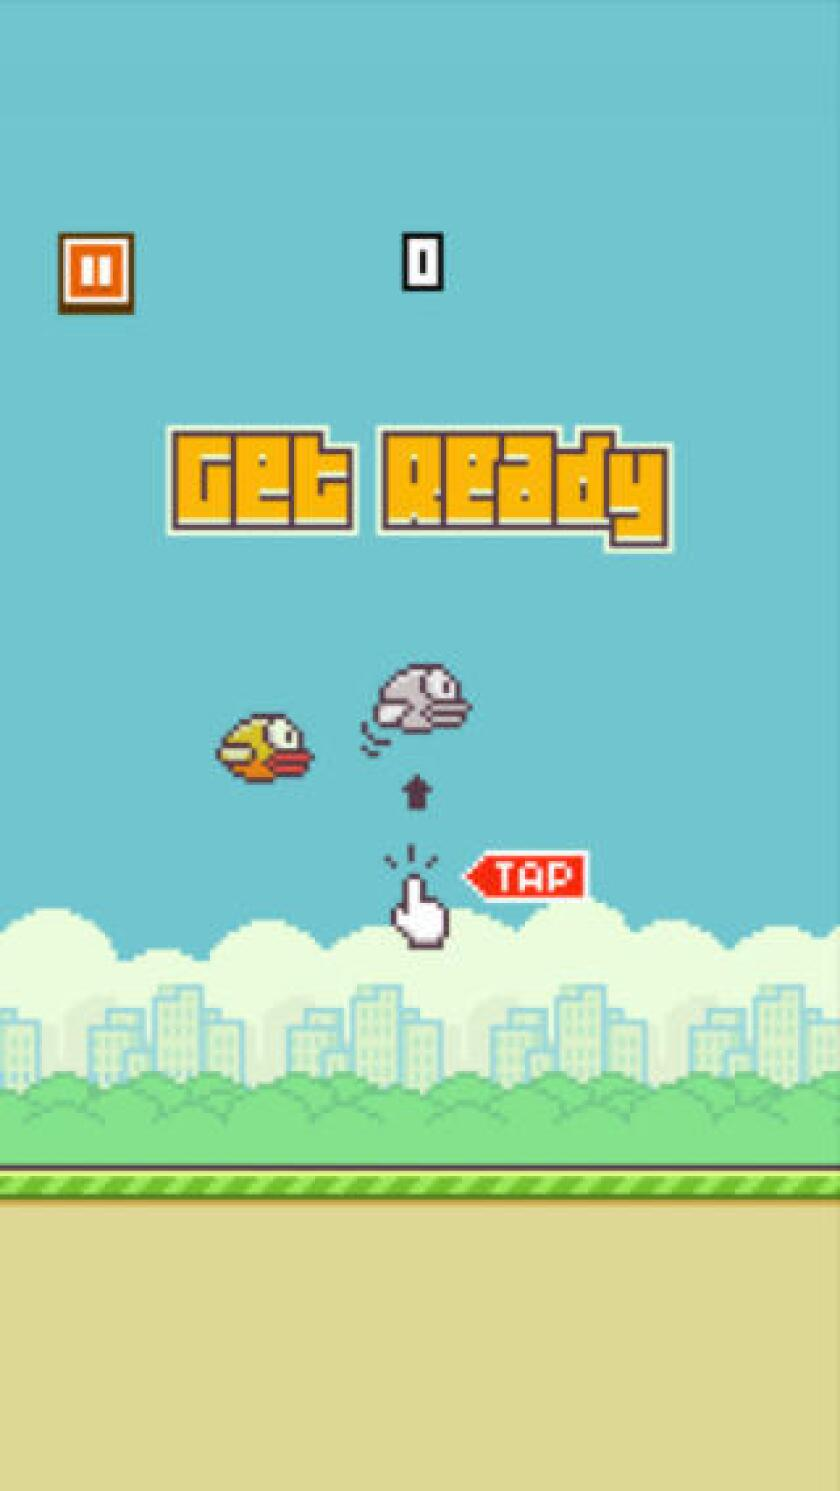 Flappy Bird has become one of the most popular mobile games recently, and that popularity is paying off for developer Dong Nguyen.